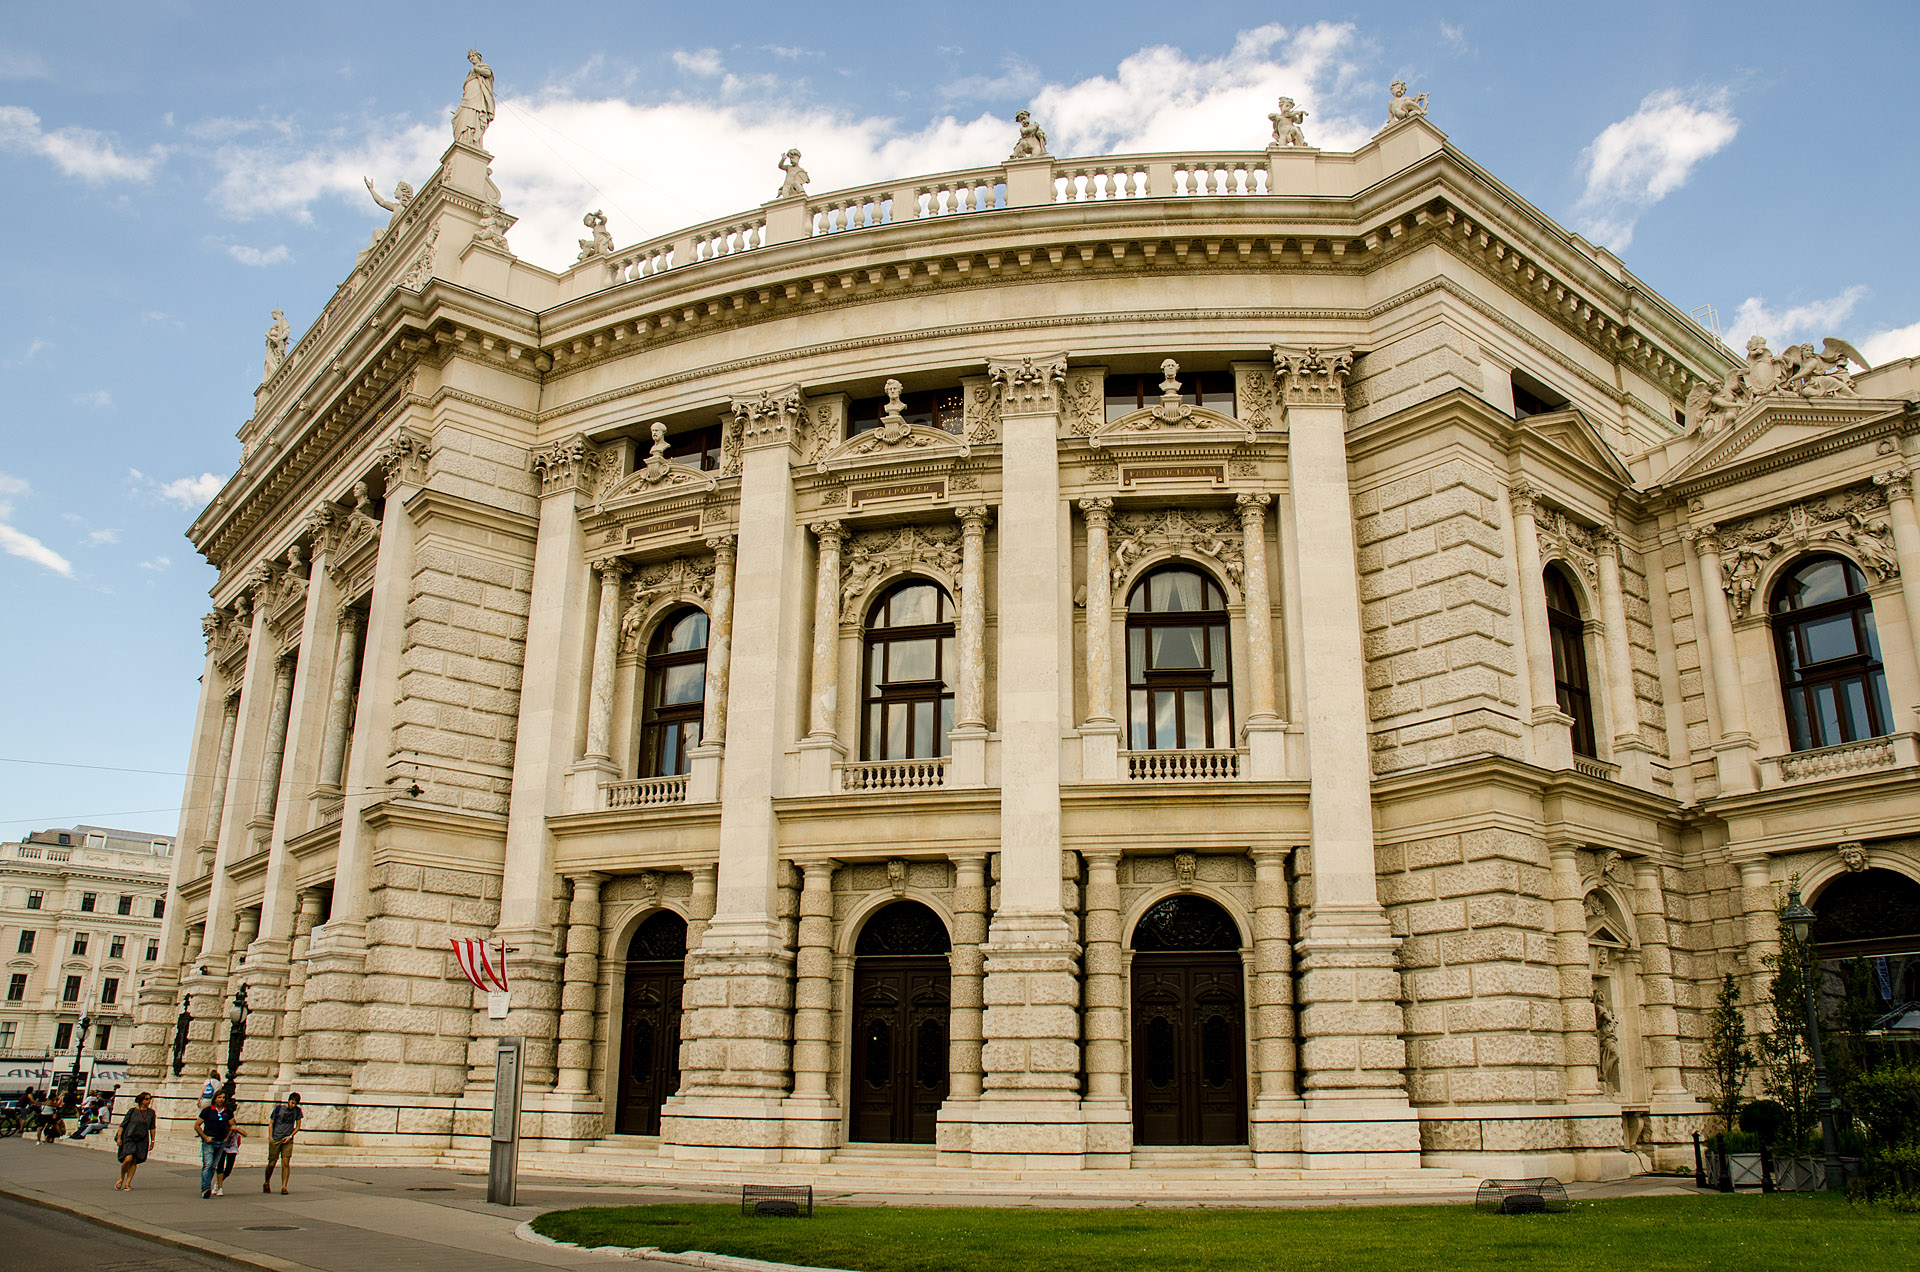 Burgtheater (National Theater)